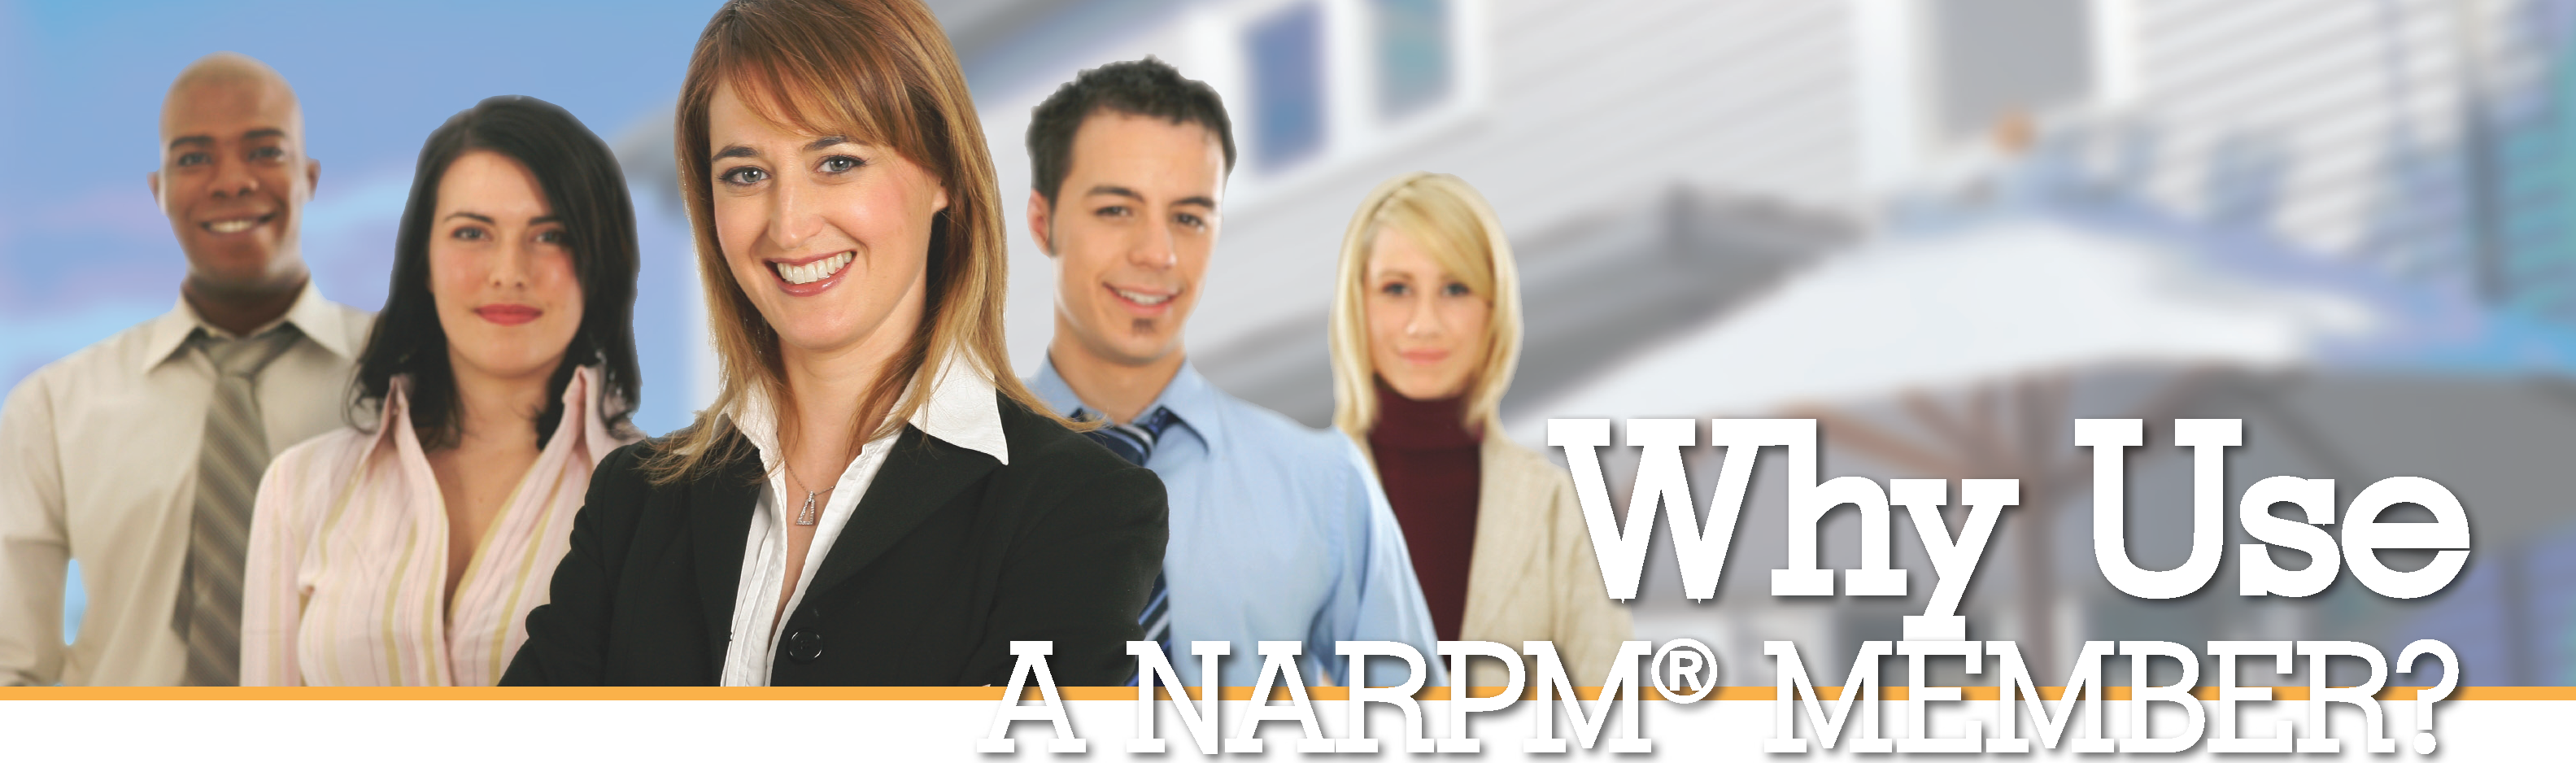 Why Use a NARPM Member